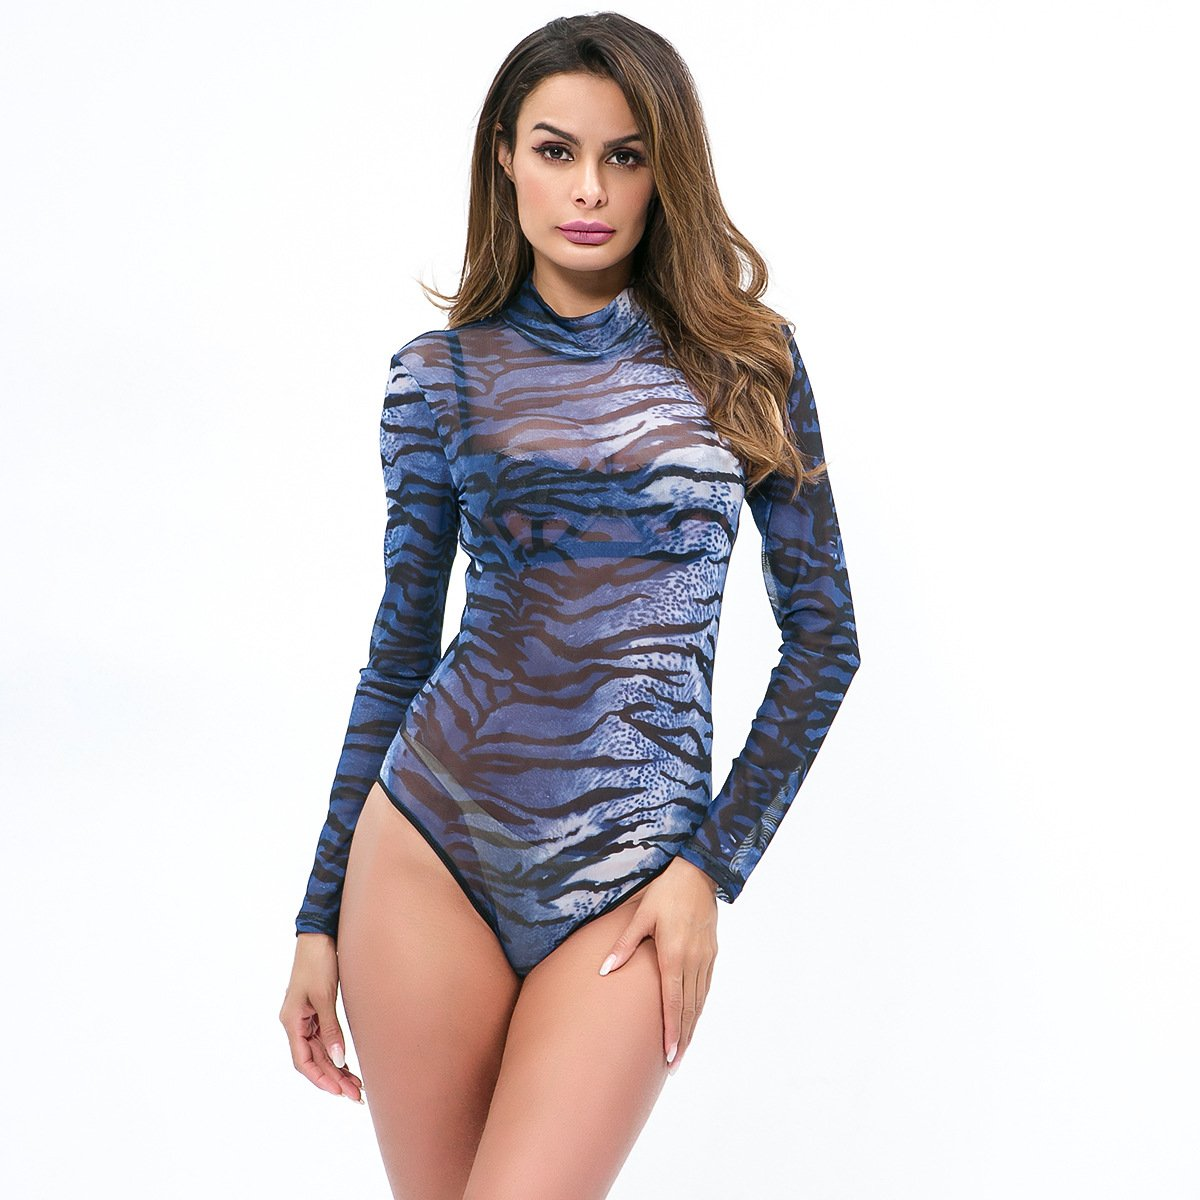 Mesh see-through leopard print bodysuit - Asia-Peak